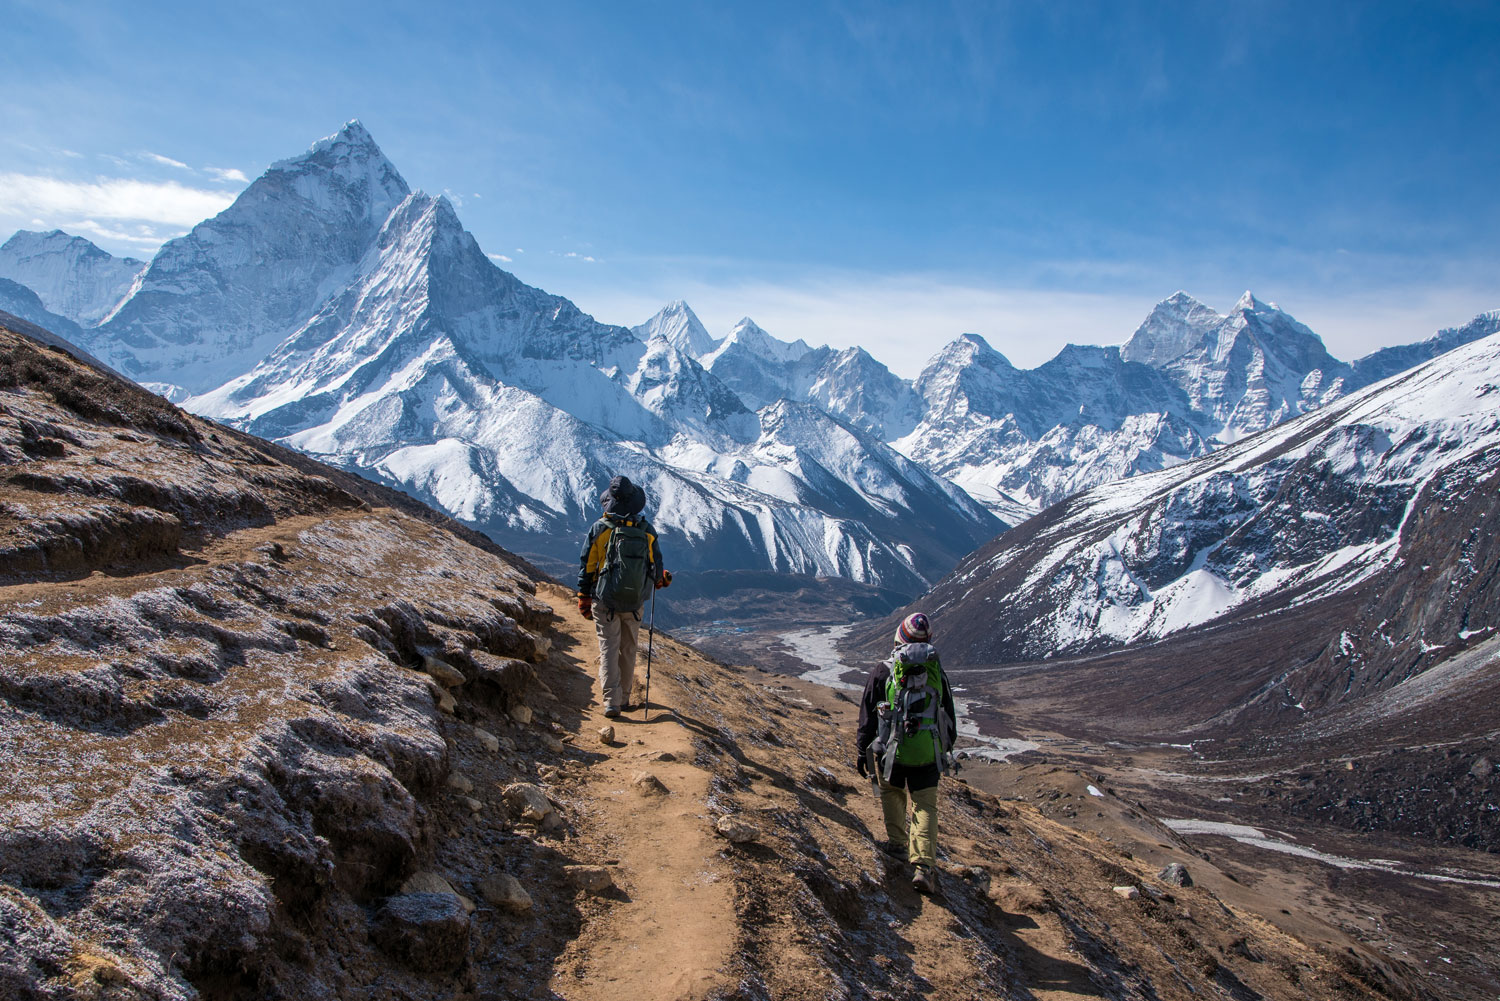 Trekkers make their way to Everest Base camp, Nepal.